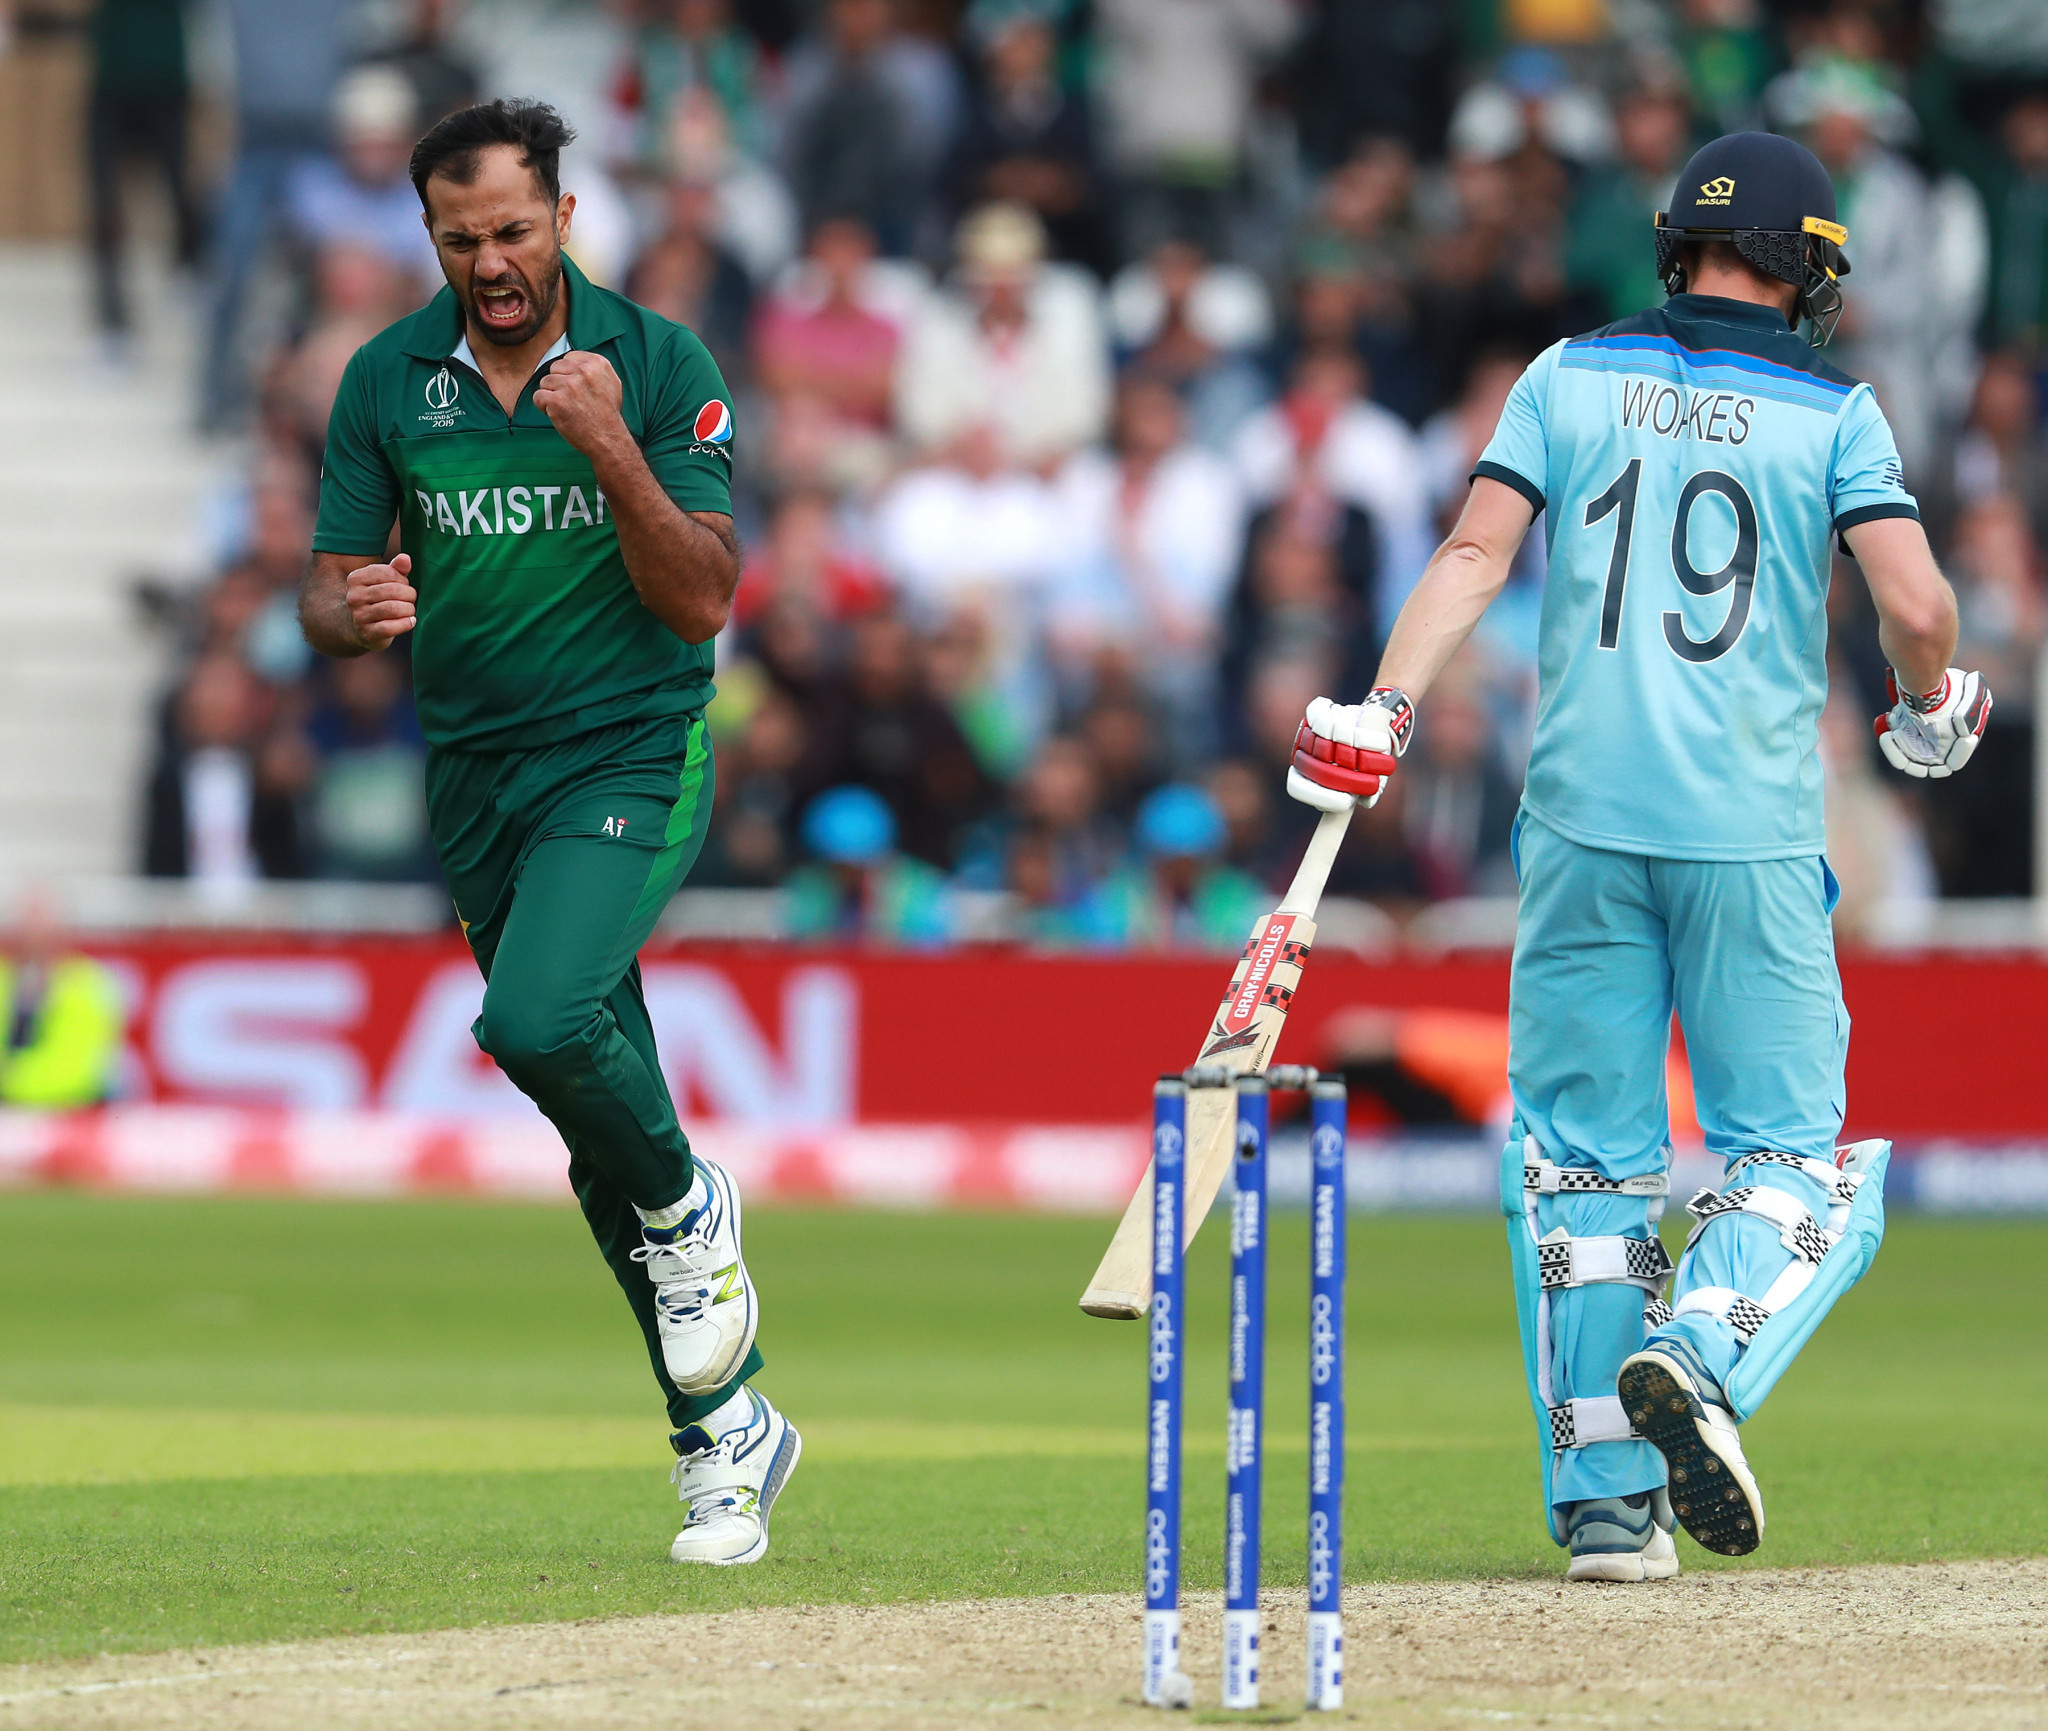 Pakistan stun favourites and hosts England at Cricket World Cup